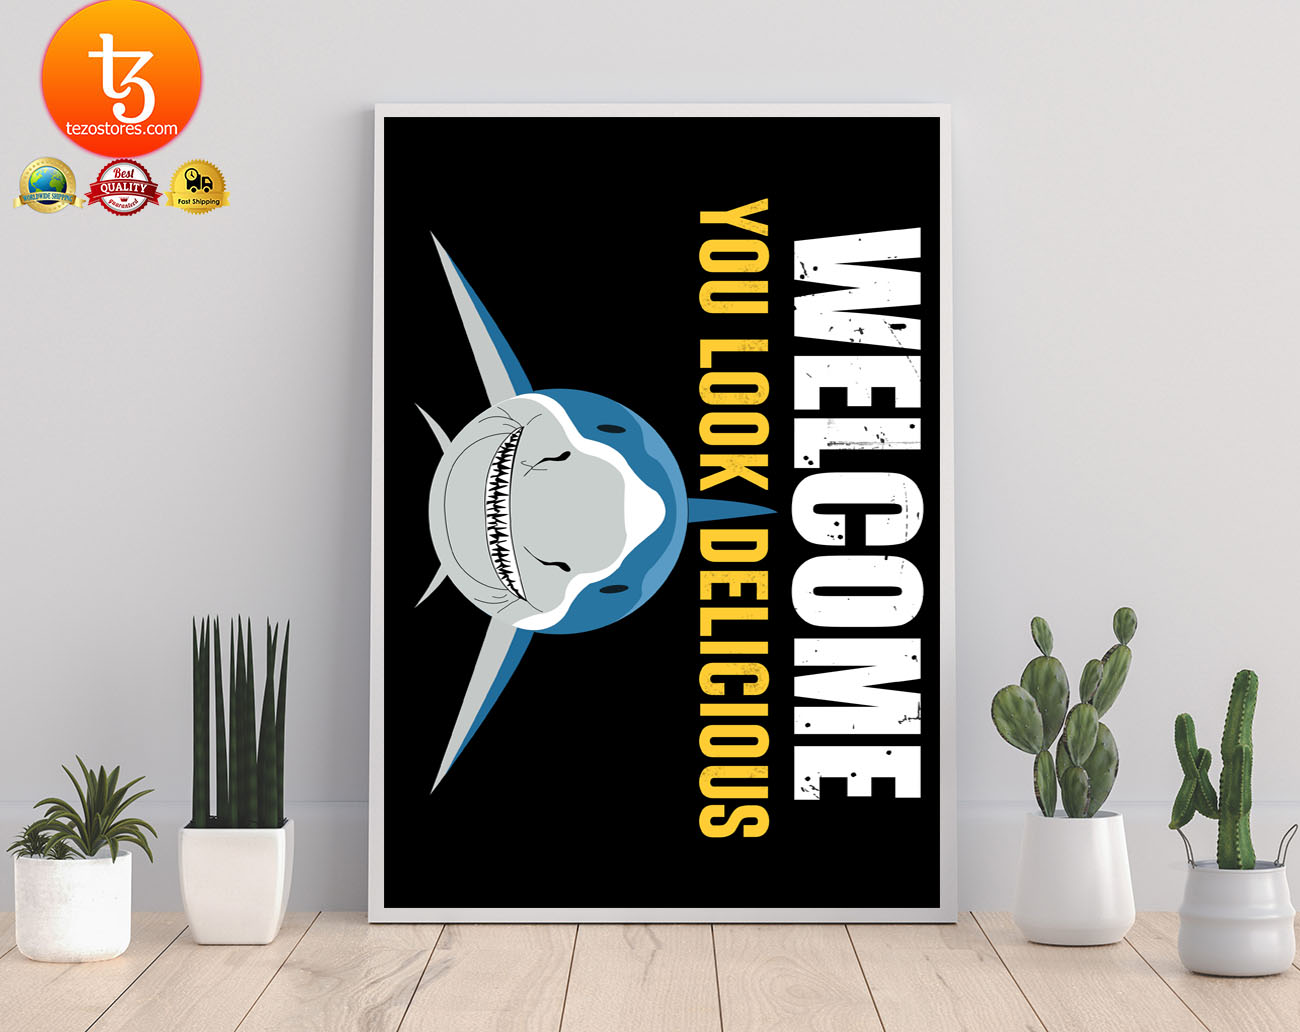 Shark welcome you look delicious doormat 19